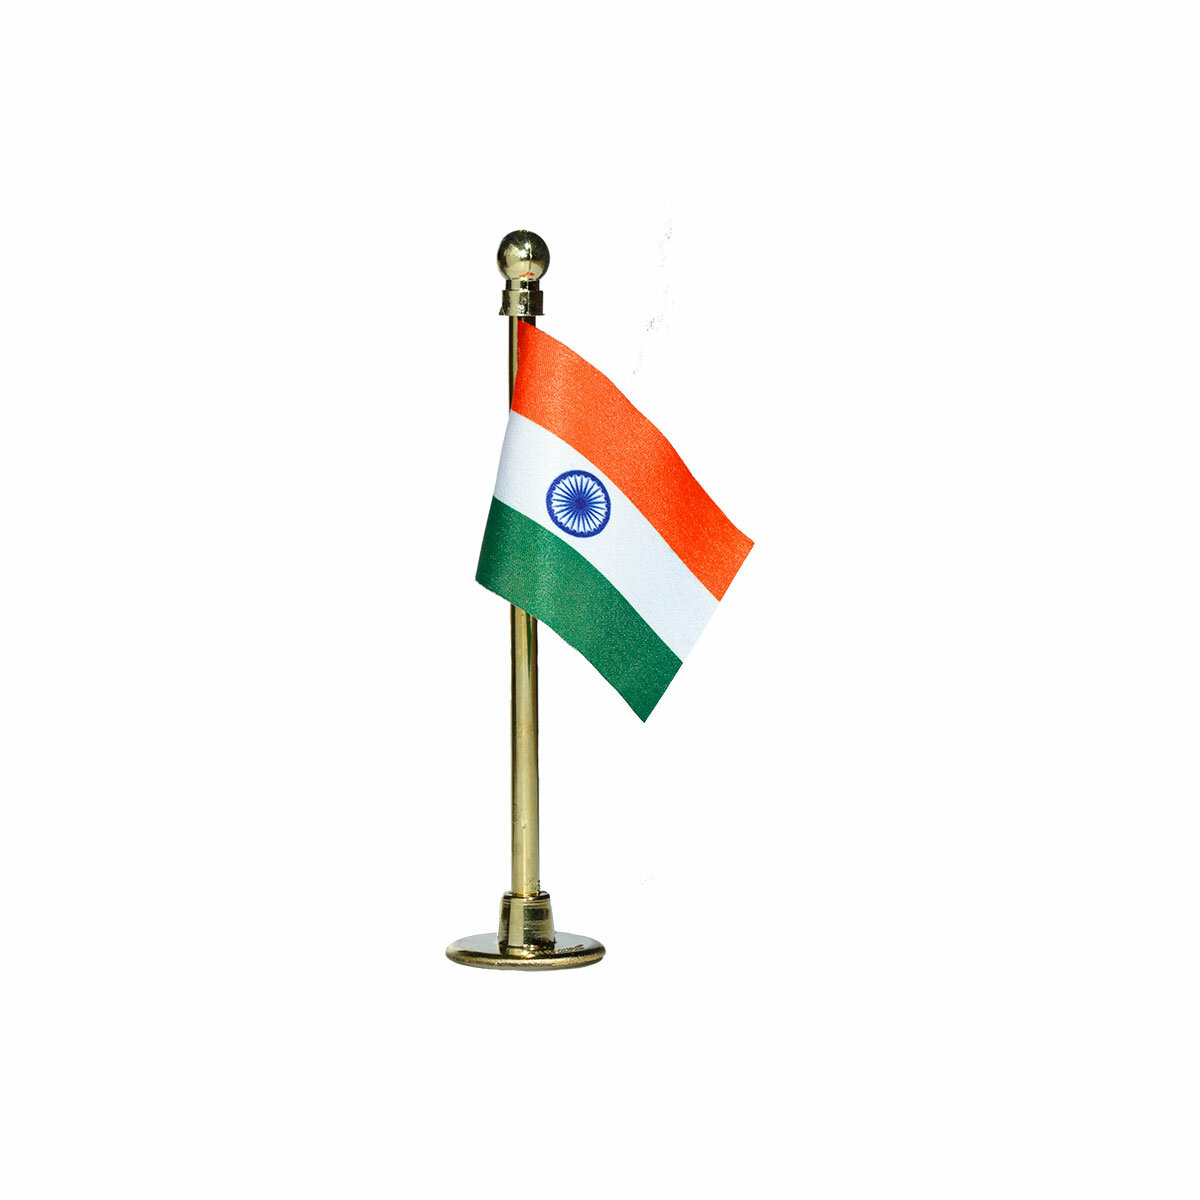 indian car dashboard flag with a gold plated plastic stand / base